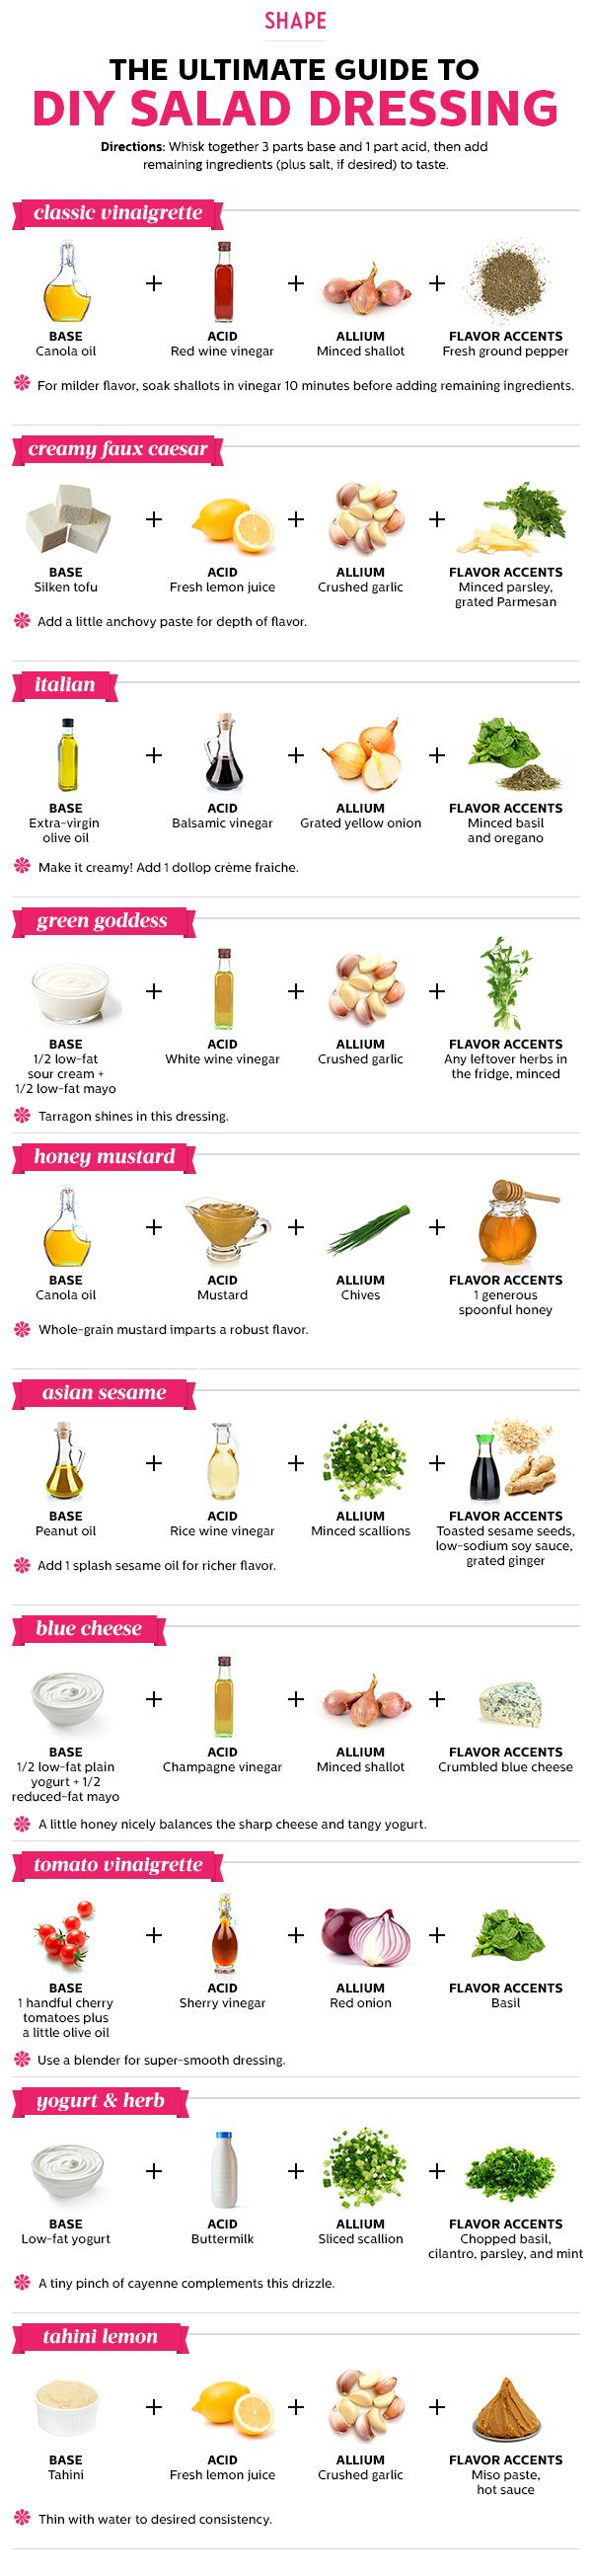 DIY Salad Dressing Recipes by shape: Much healthier than many of the ready made ones. Whisking your own dressing takes less than five minutes and tastes a hundred times better. Just remember the golden ratio of 3 to 1: three parts base ingredient to one part acid. Then add other accents and seasonings (including salt) to suit your palate. Soon you'll be creating special sauces in flavors you'll never find in a supermarket. #Salad_Dressings